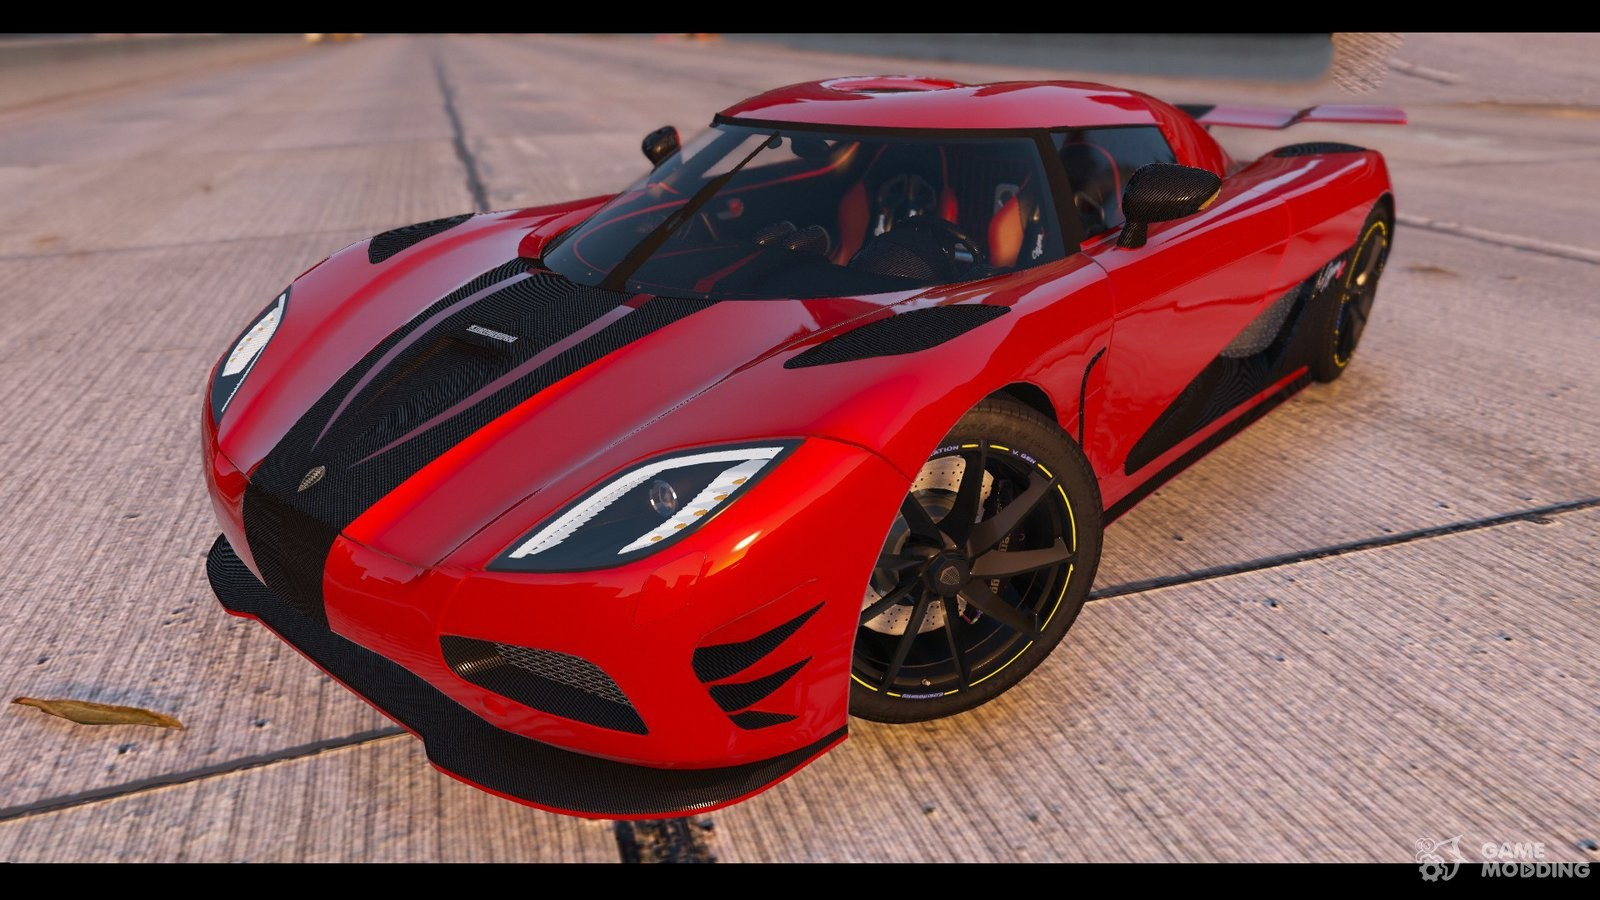 koenigsegg agera r grid 2 with 58973 2014 Koenigsegg Agera R V10 on Rpg Maker Mv Dlc Import additionally Razendsnel Gamen Met De Koenigsegg Razer Blade Laptop as well Koenigsegg Agera R Wallpaper 1080p in addition Vehicle likewise Koenigsegg Agera R Wallpaper 1080p.